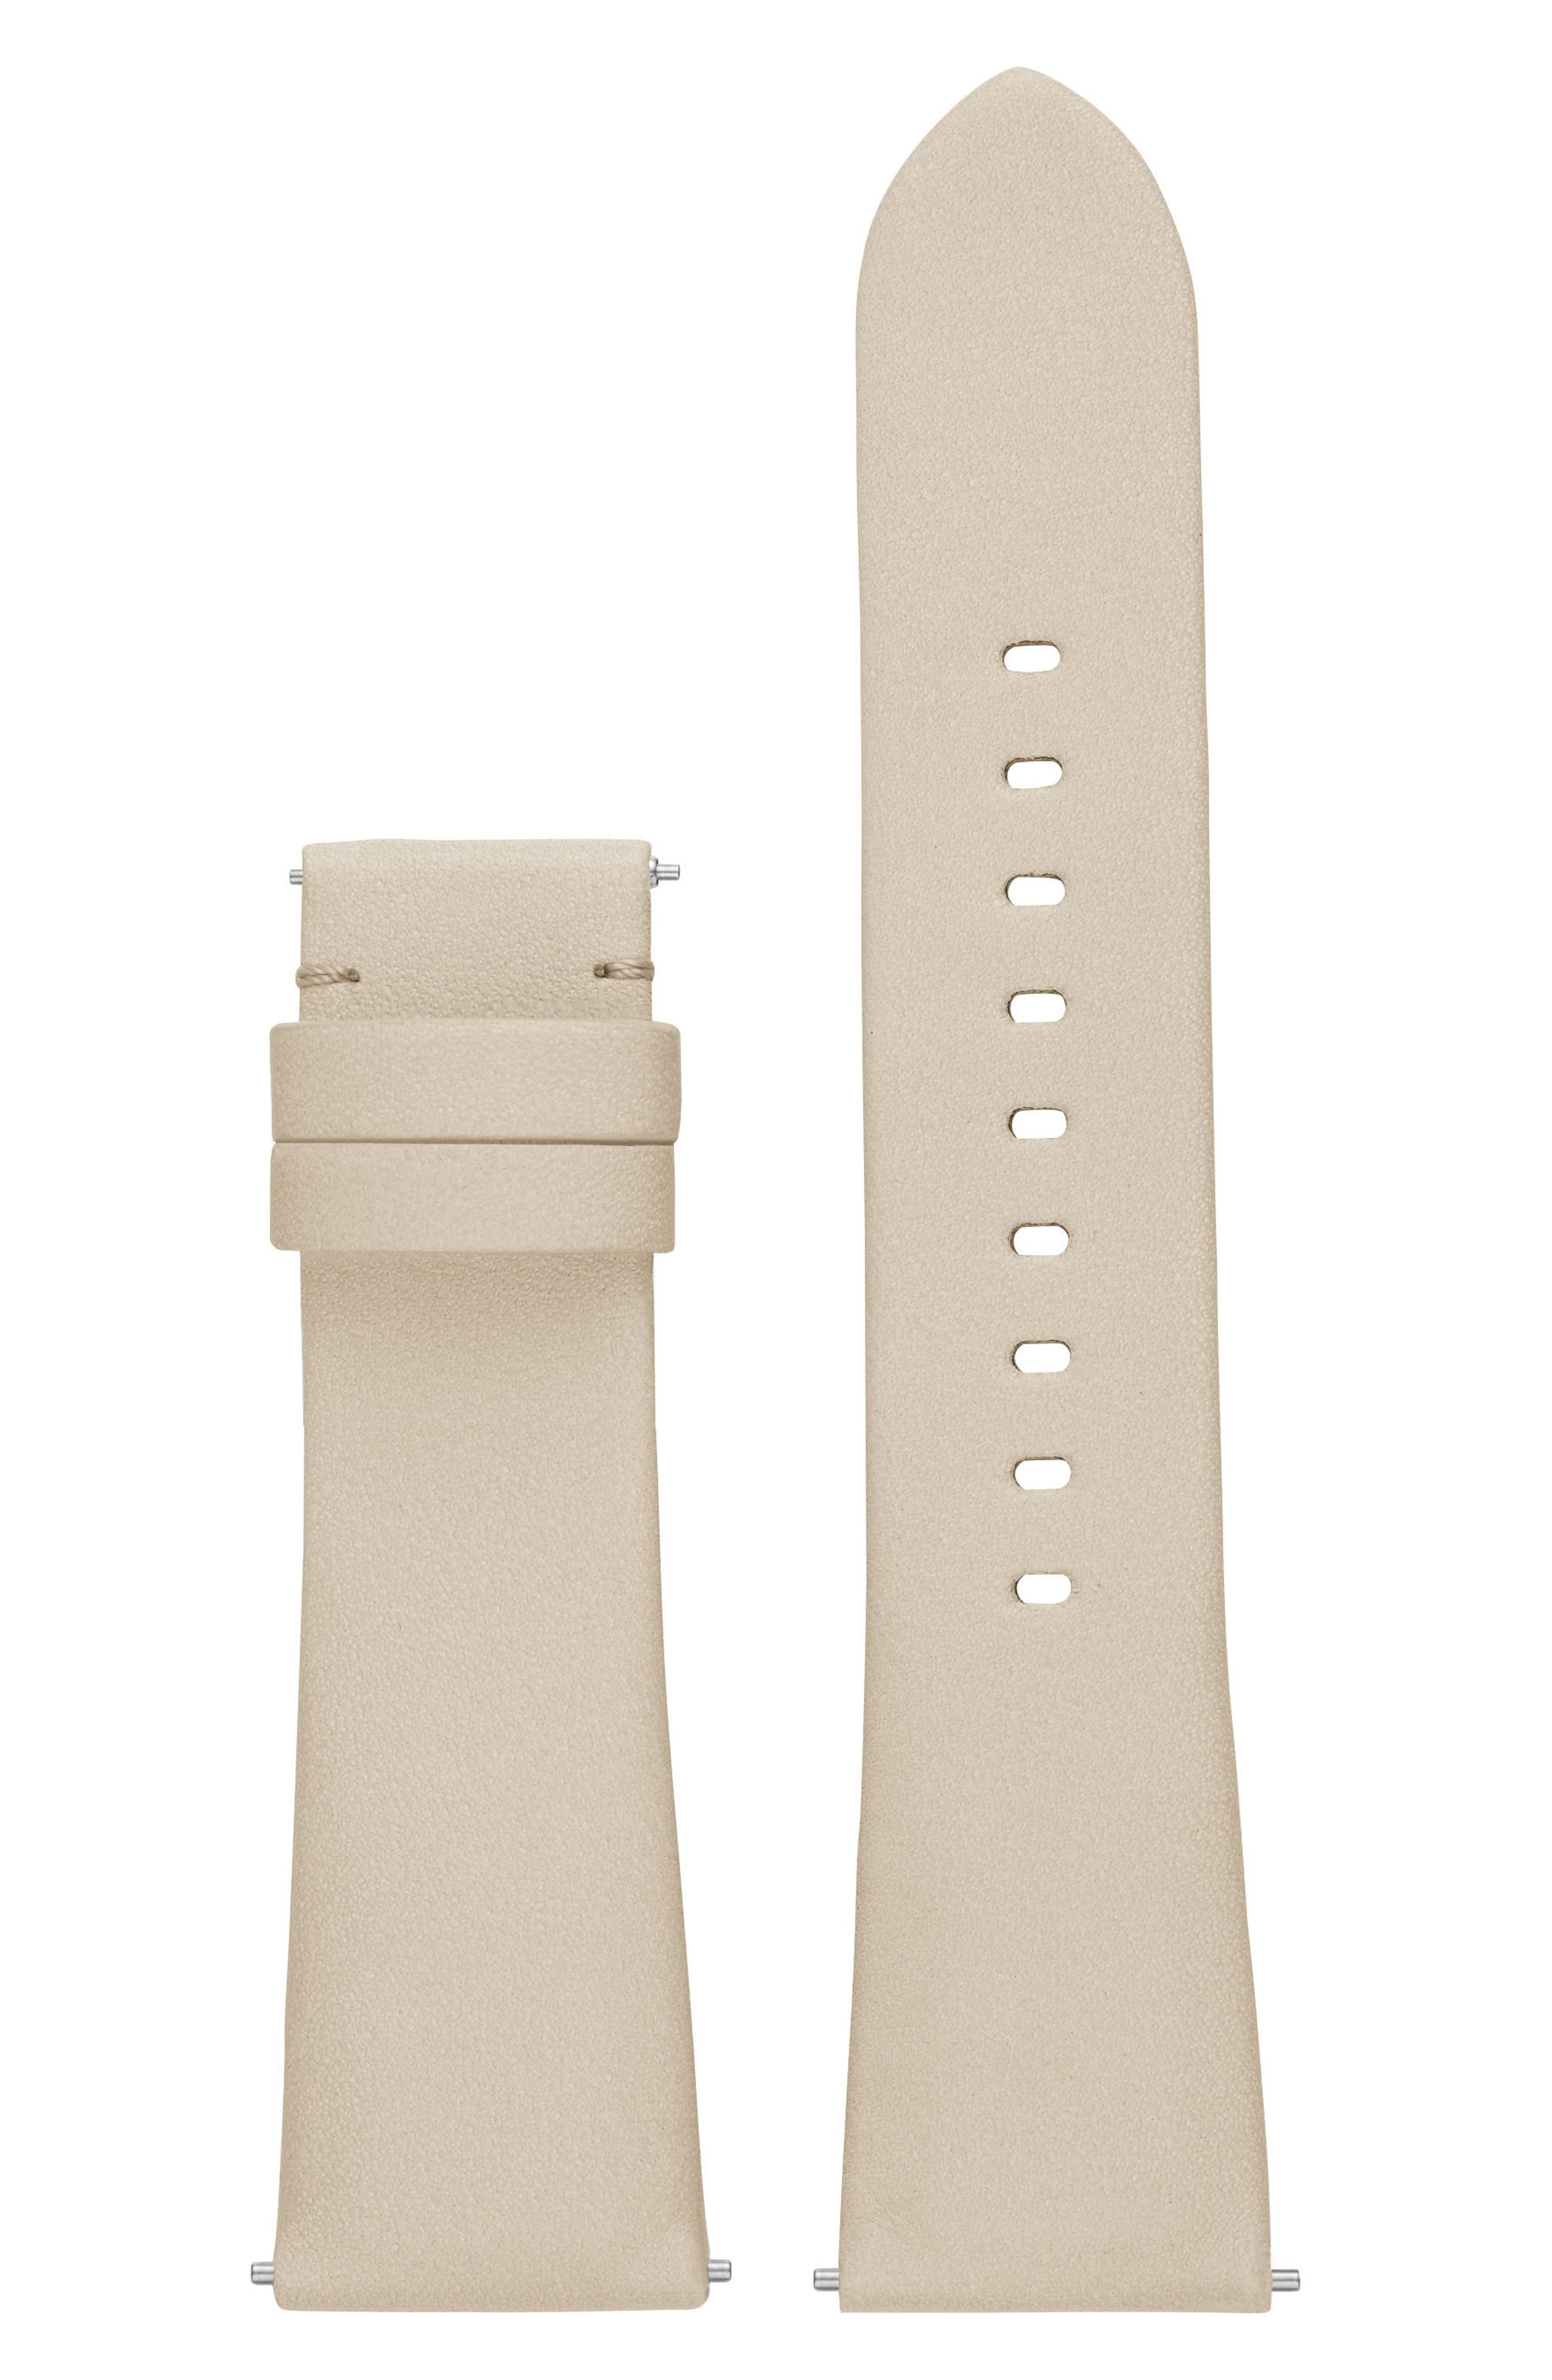 Alternate Image 1 Selected - Michael Kors Access Bradshaw 22mm Leather Watch Strap